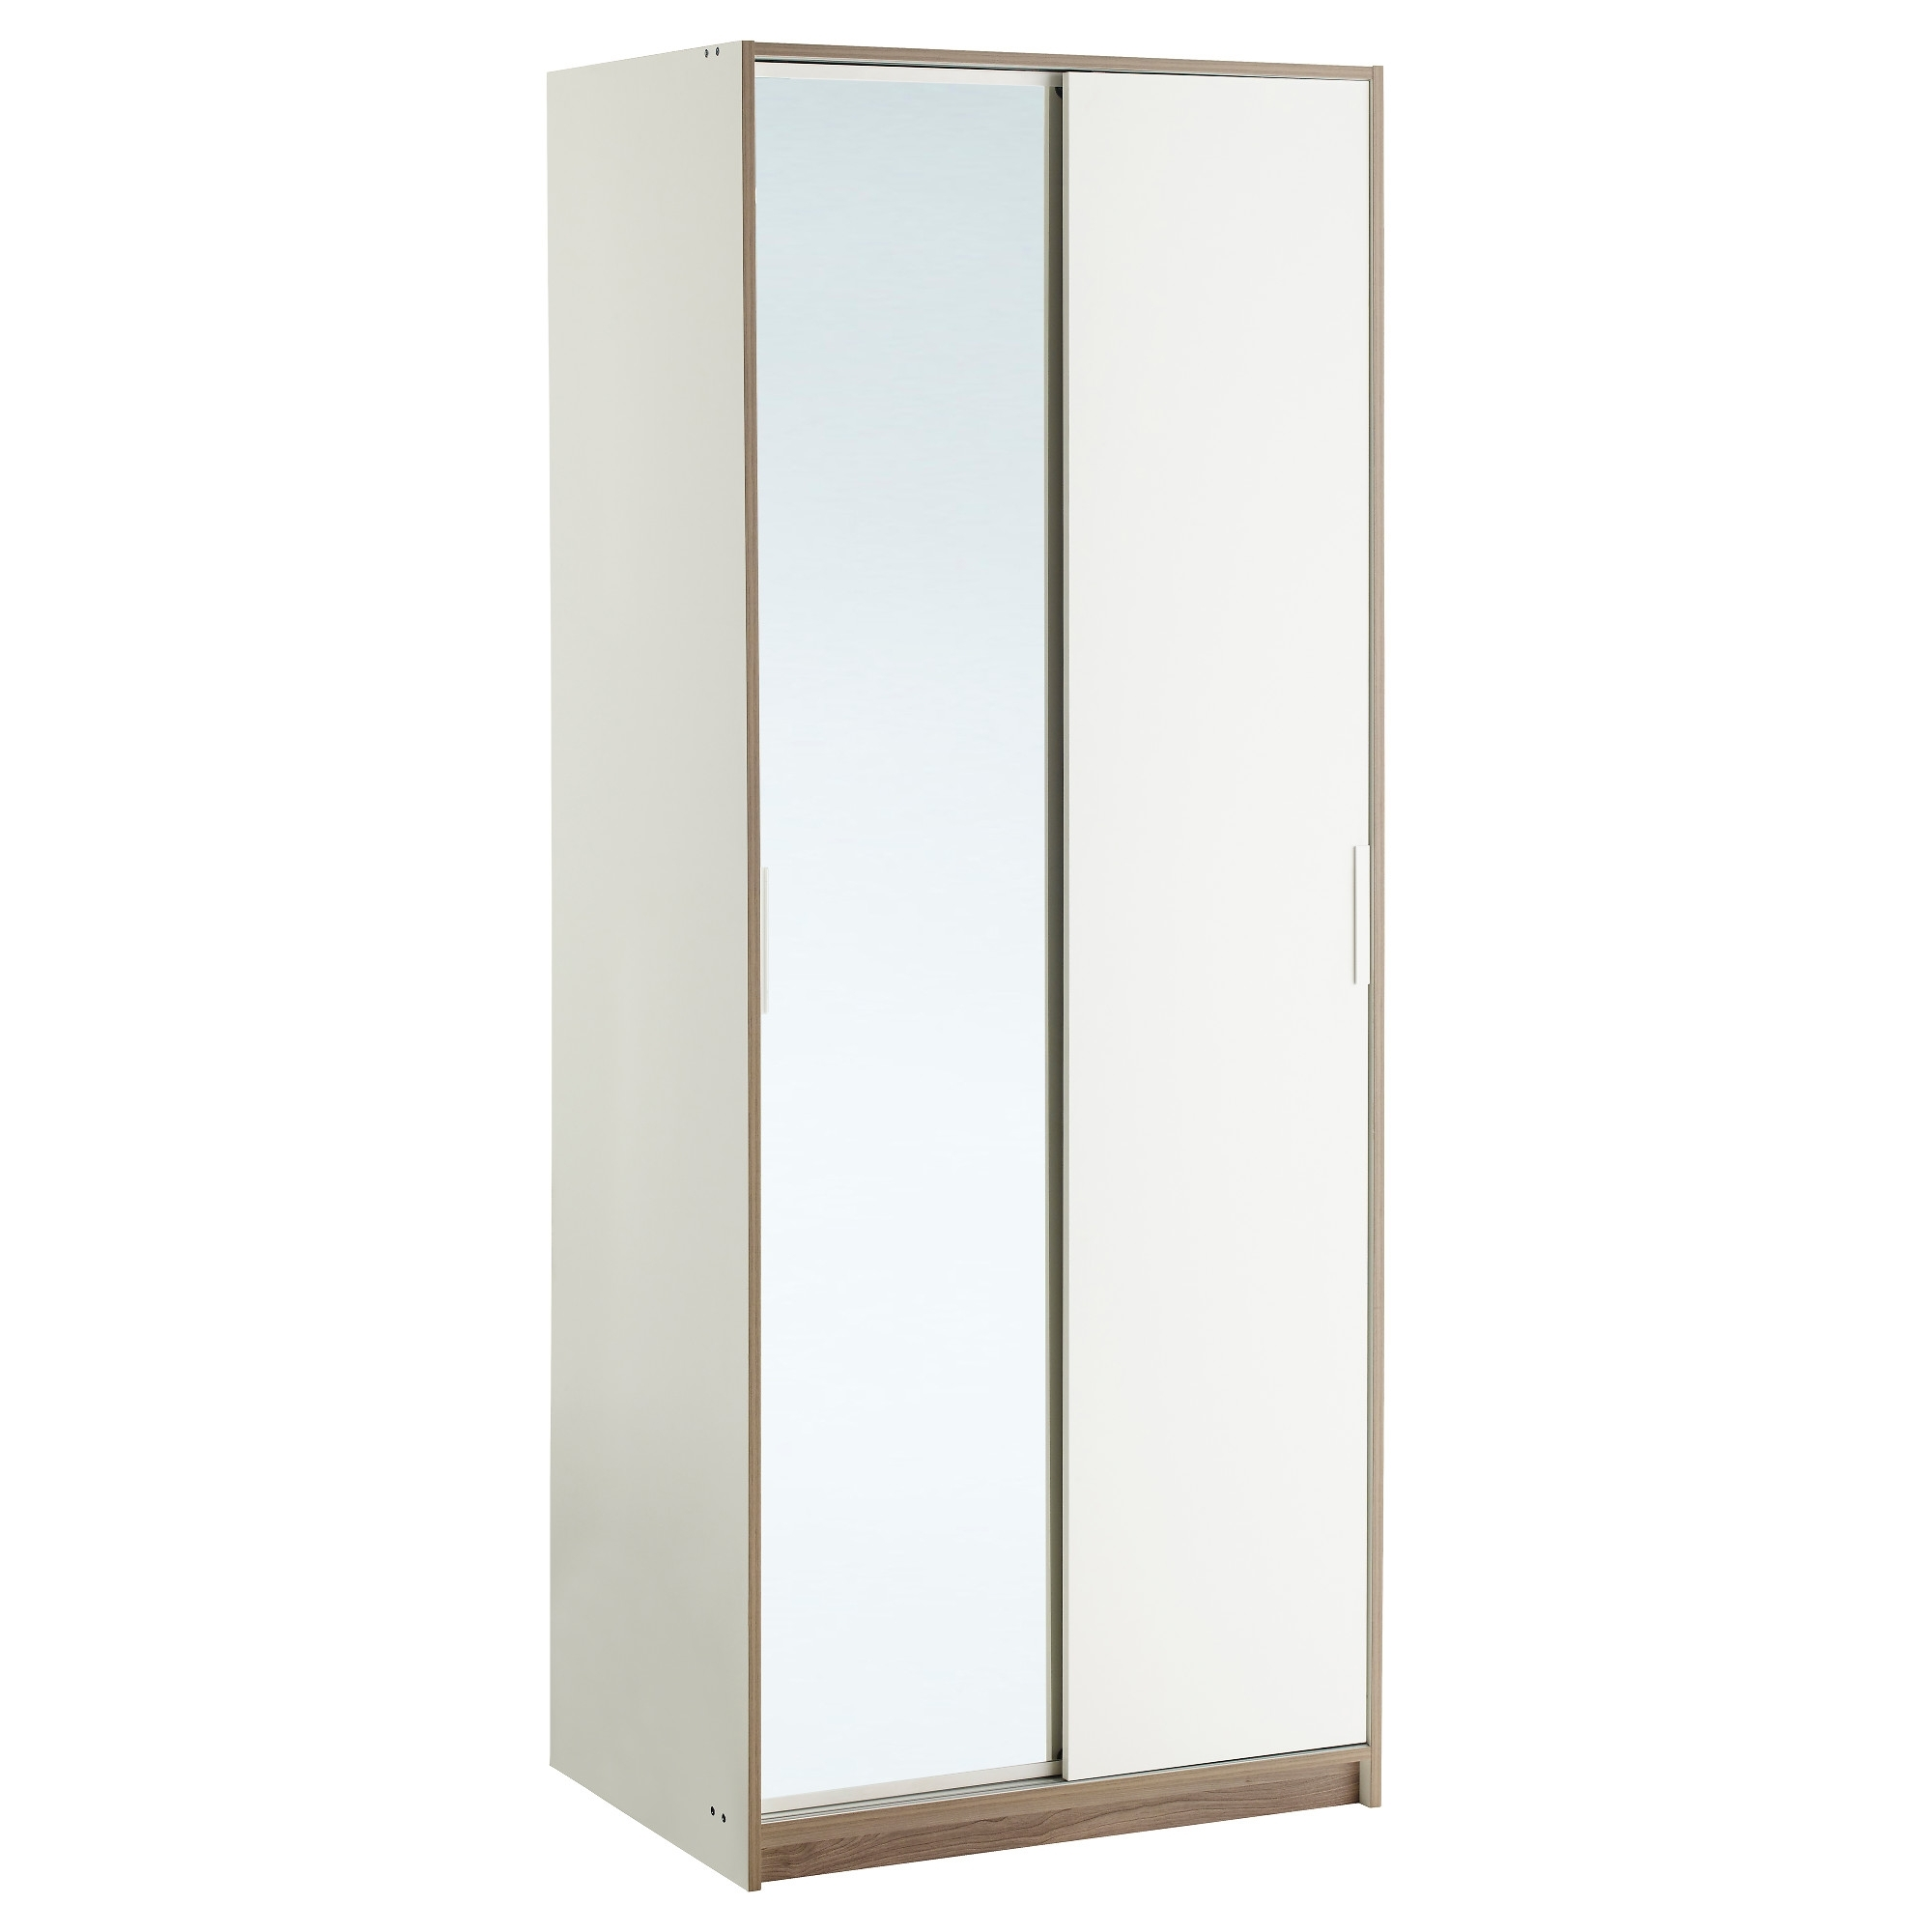 Double Mirrored Wardrobes Intended For Well Known Trysil Wardrobe White/mirror Glass 79X61X202 Cm – Ikea (View 8 of 15)